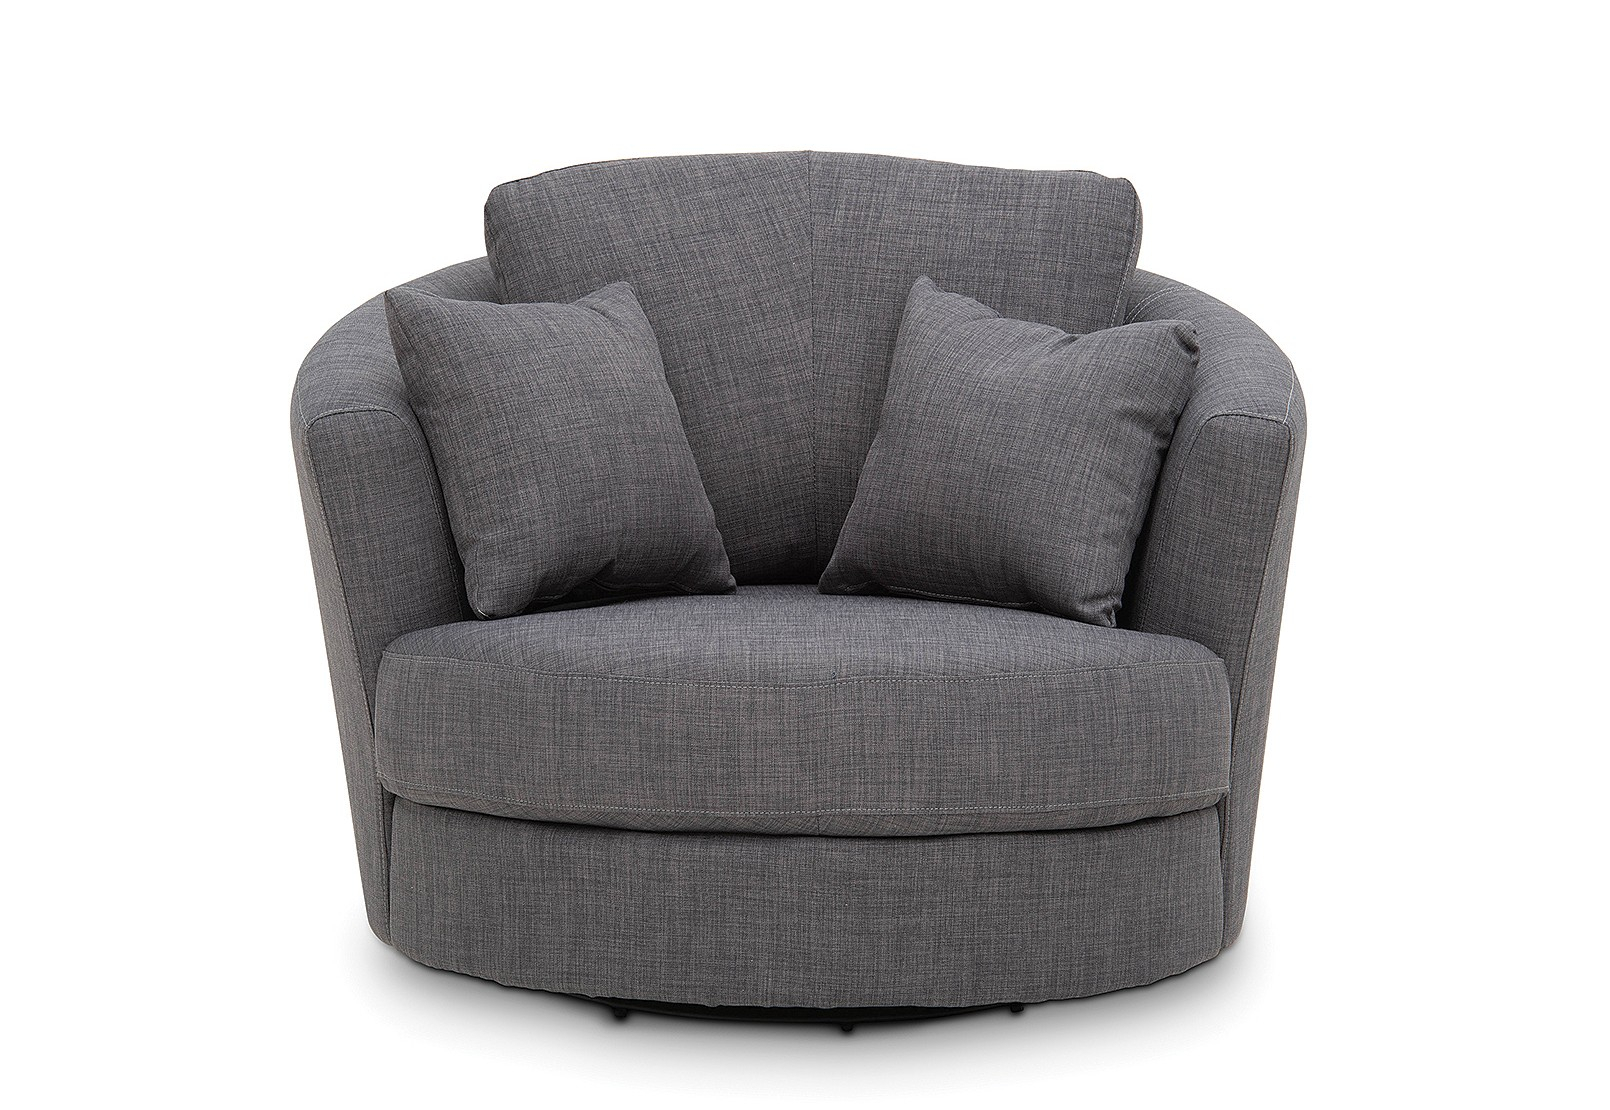 Omaha Fabric Swivel Chair | Amart Furniture Throughout Dark Grey Swivel Chairs (View 21 of 25)